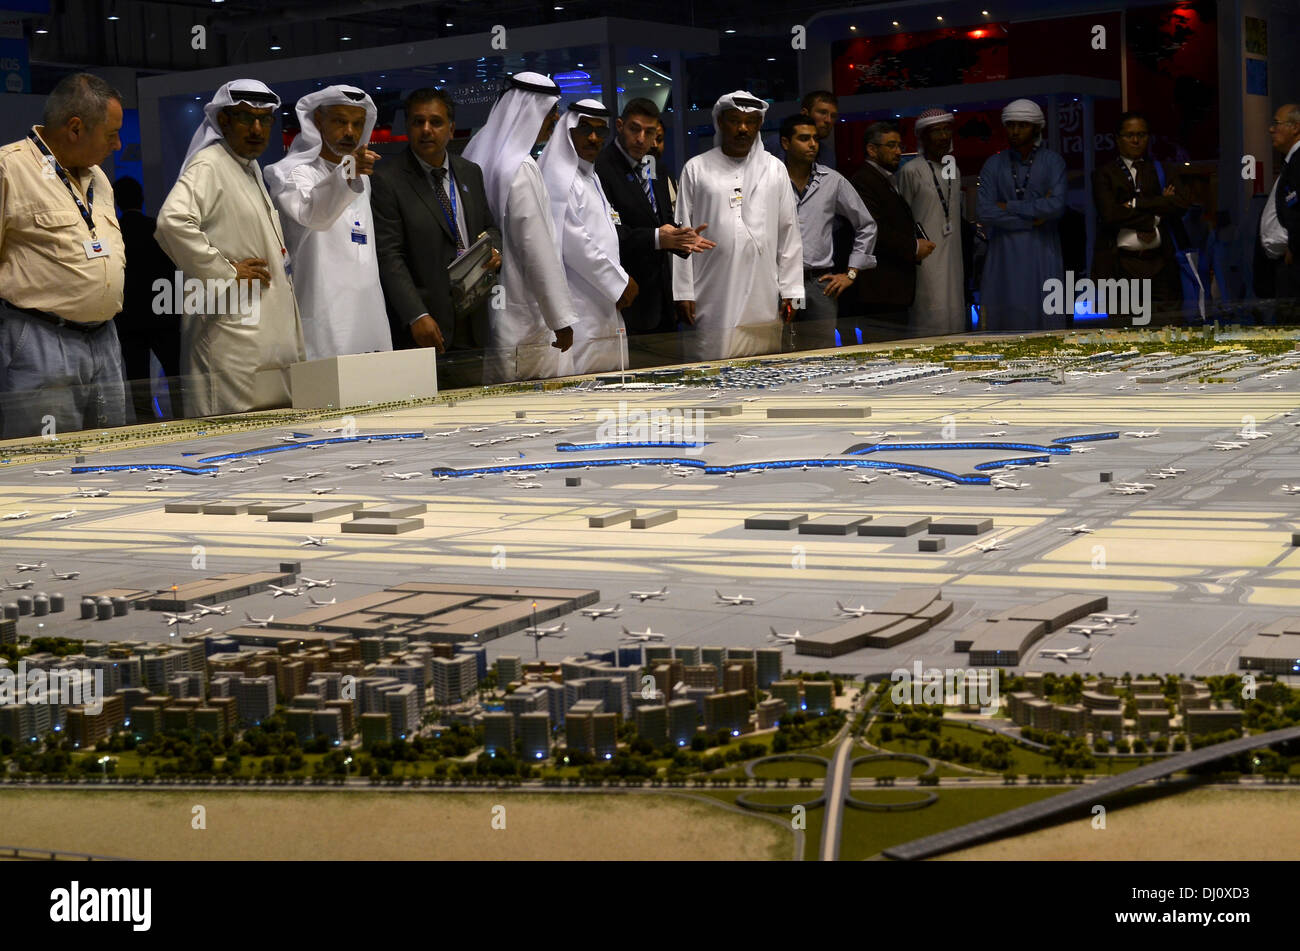 Dubai. 18th November 2013: Springing out of the desert - visitors to the 2013 Dubai Air Show take a look at a scale - Stock Image